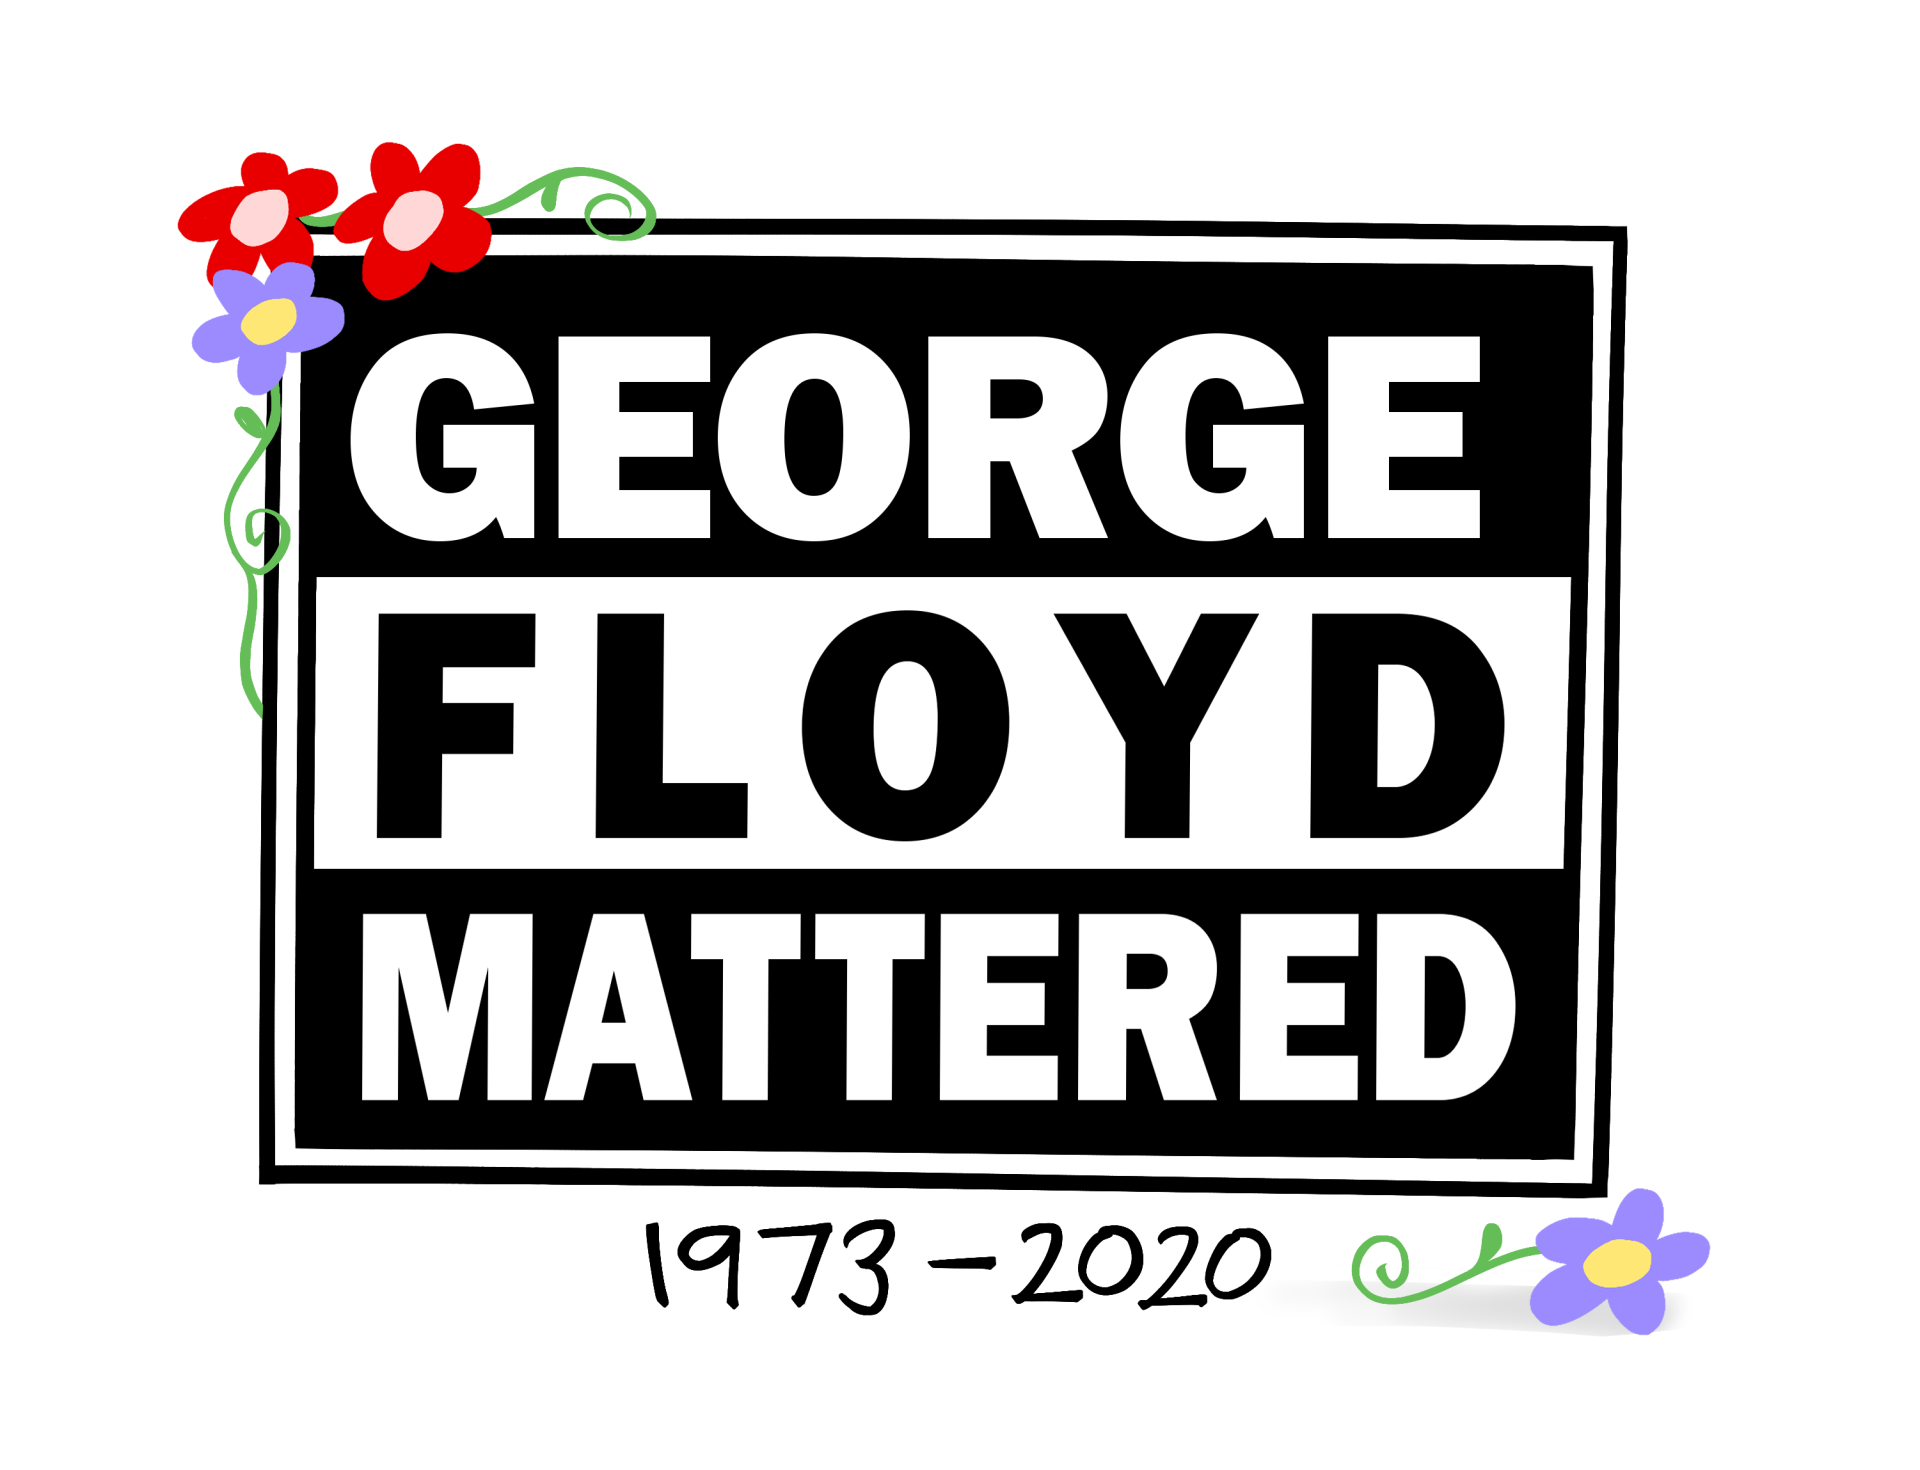 """A Mark Fiore cartoon commemorating one year since George Floyd was killed by police. The cartoon says """"Geroge Floyd Mattered, 1973-2020."""""""